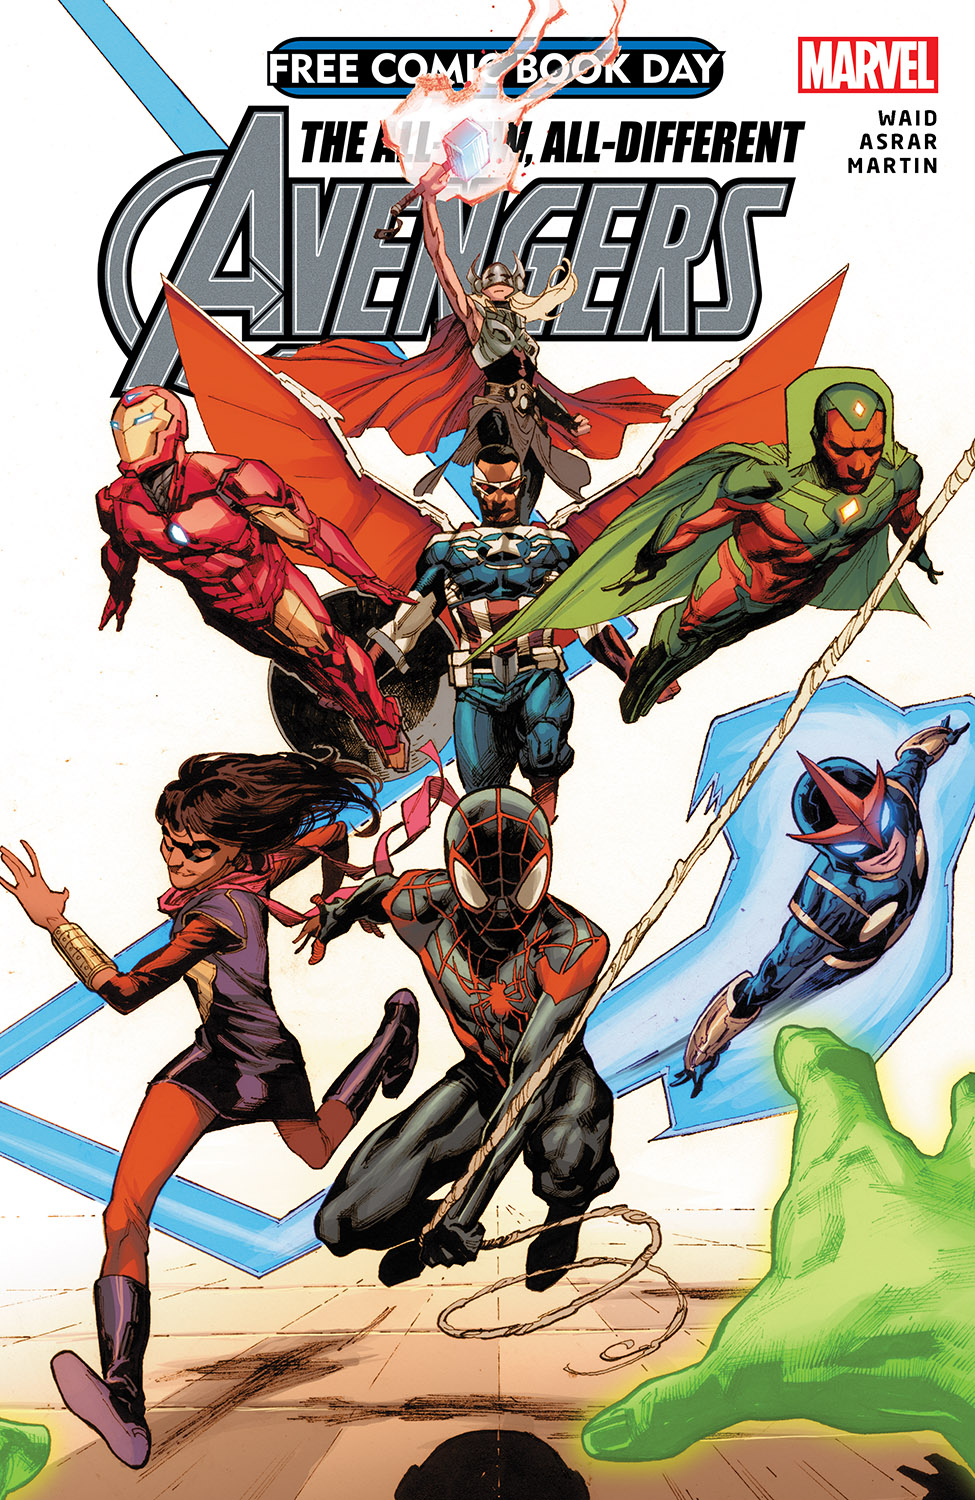 Free Comic Book Day (All-New, All-Different Avengers) (2015) #1